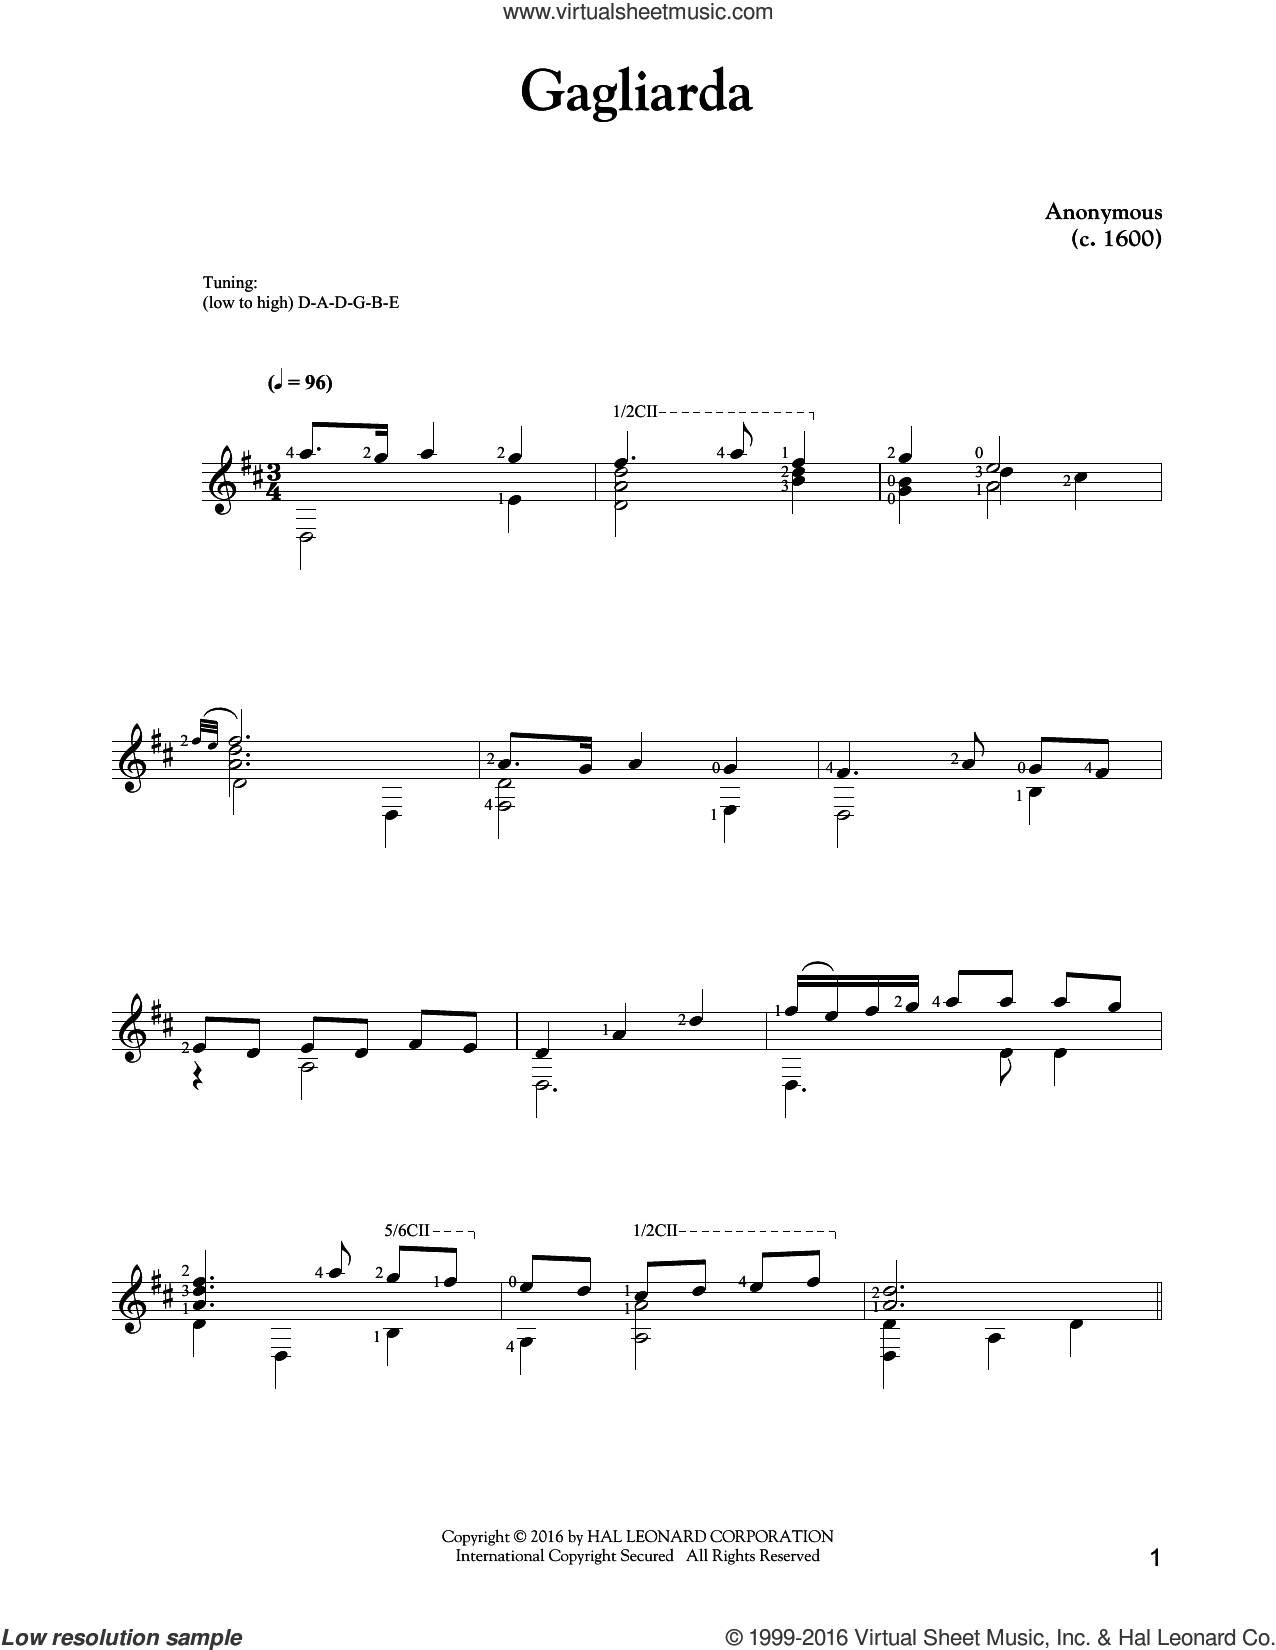 Gagliarda sheet music for guitar solo by Anonymous. Score Image Preview.